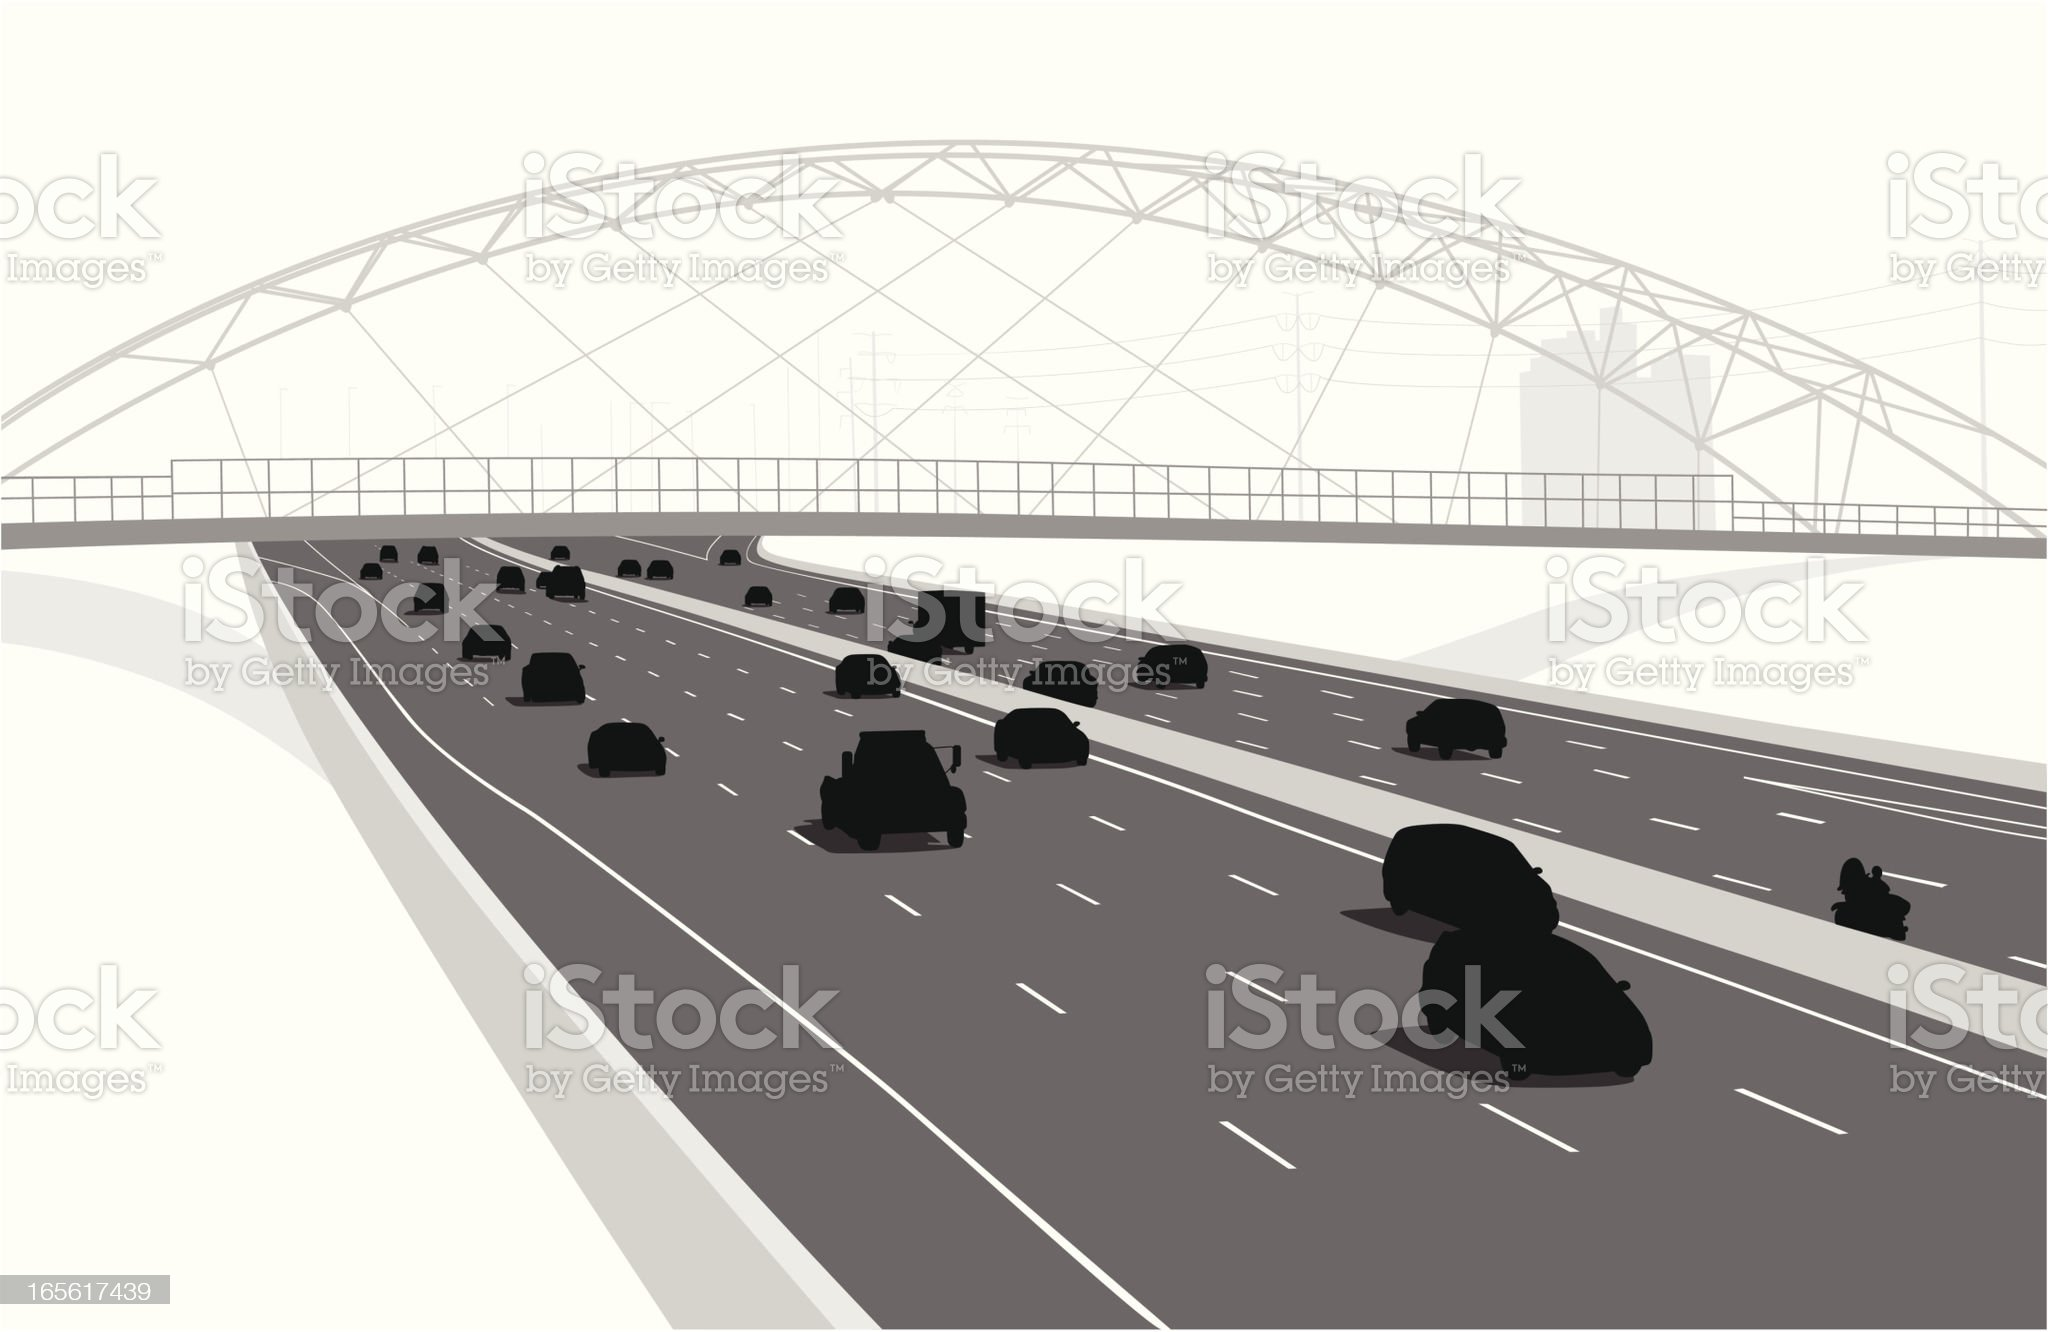 Pedestrian Architecture Vector Silhouette royalty-free stock vector art